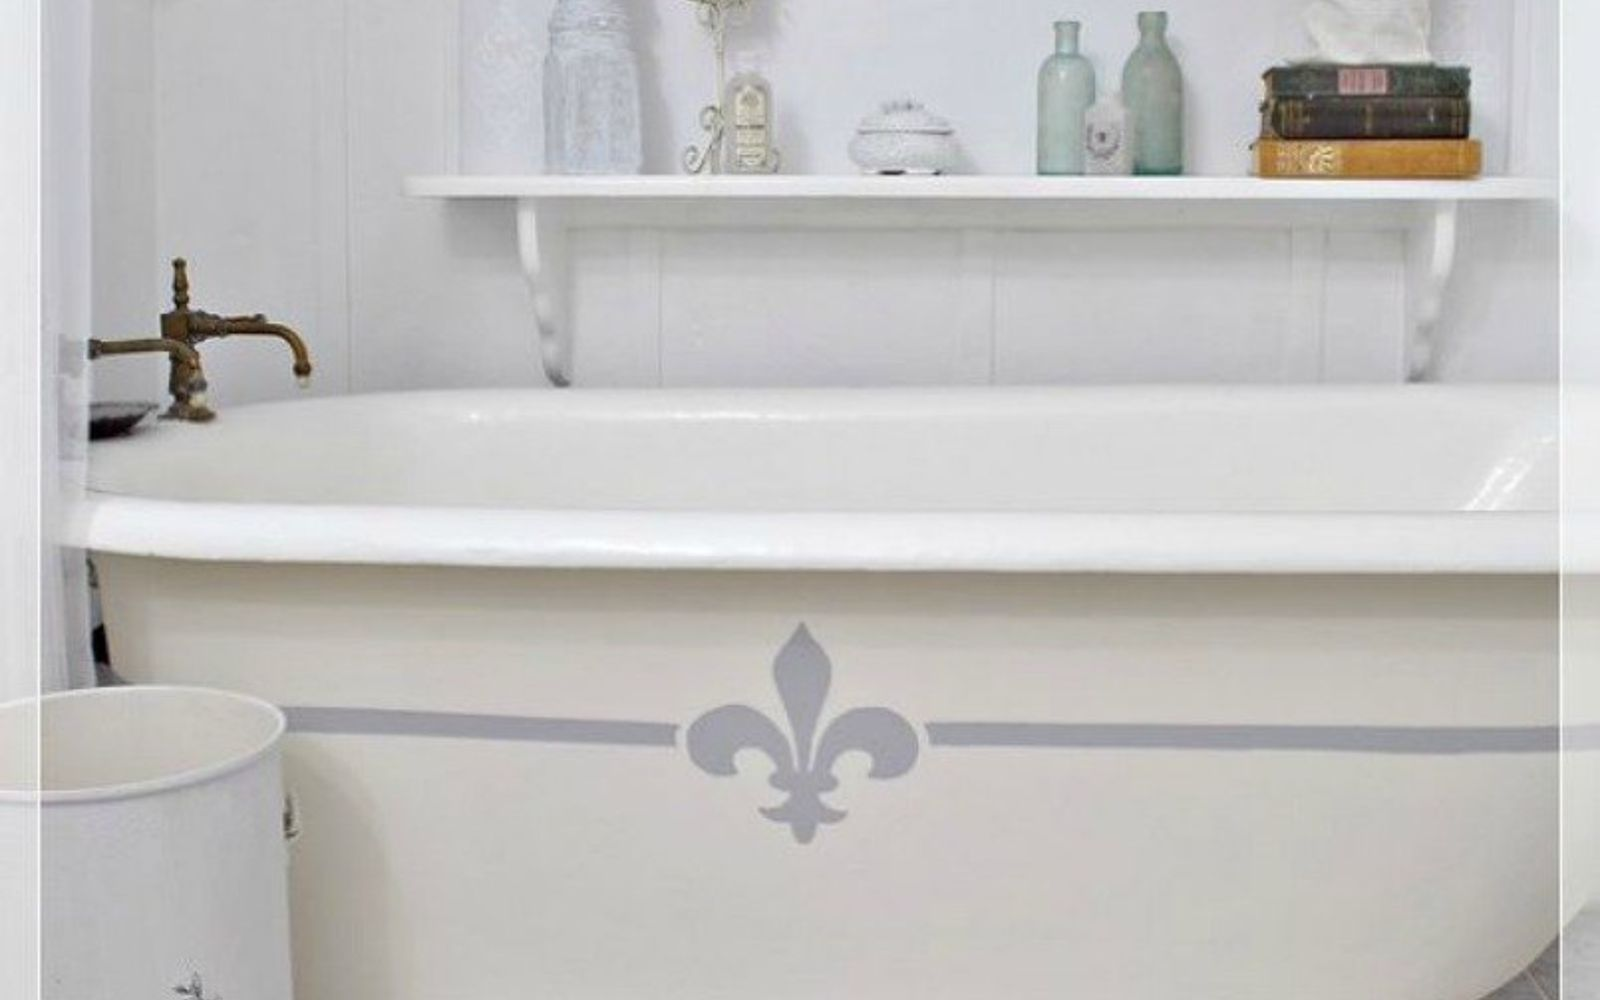 s 11 easy ways to refresh your old bathtub, bathroom ideas, Or paint the side of your tub with a design